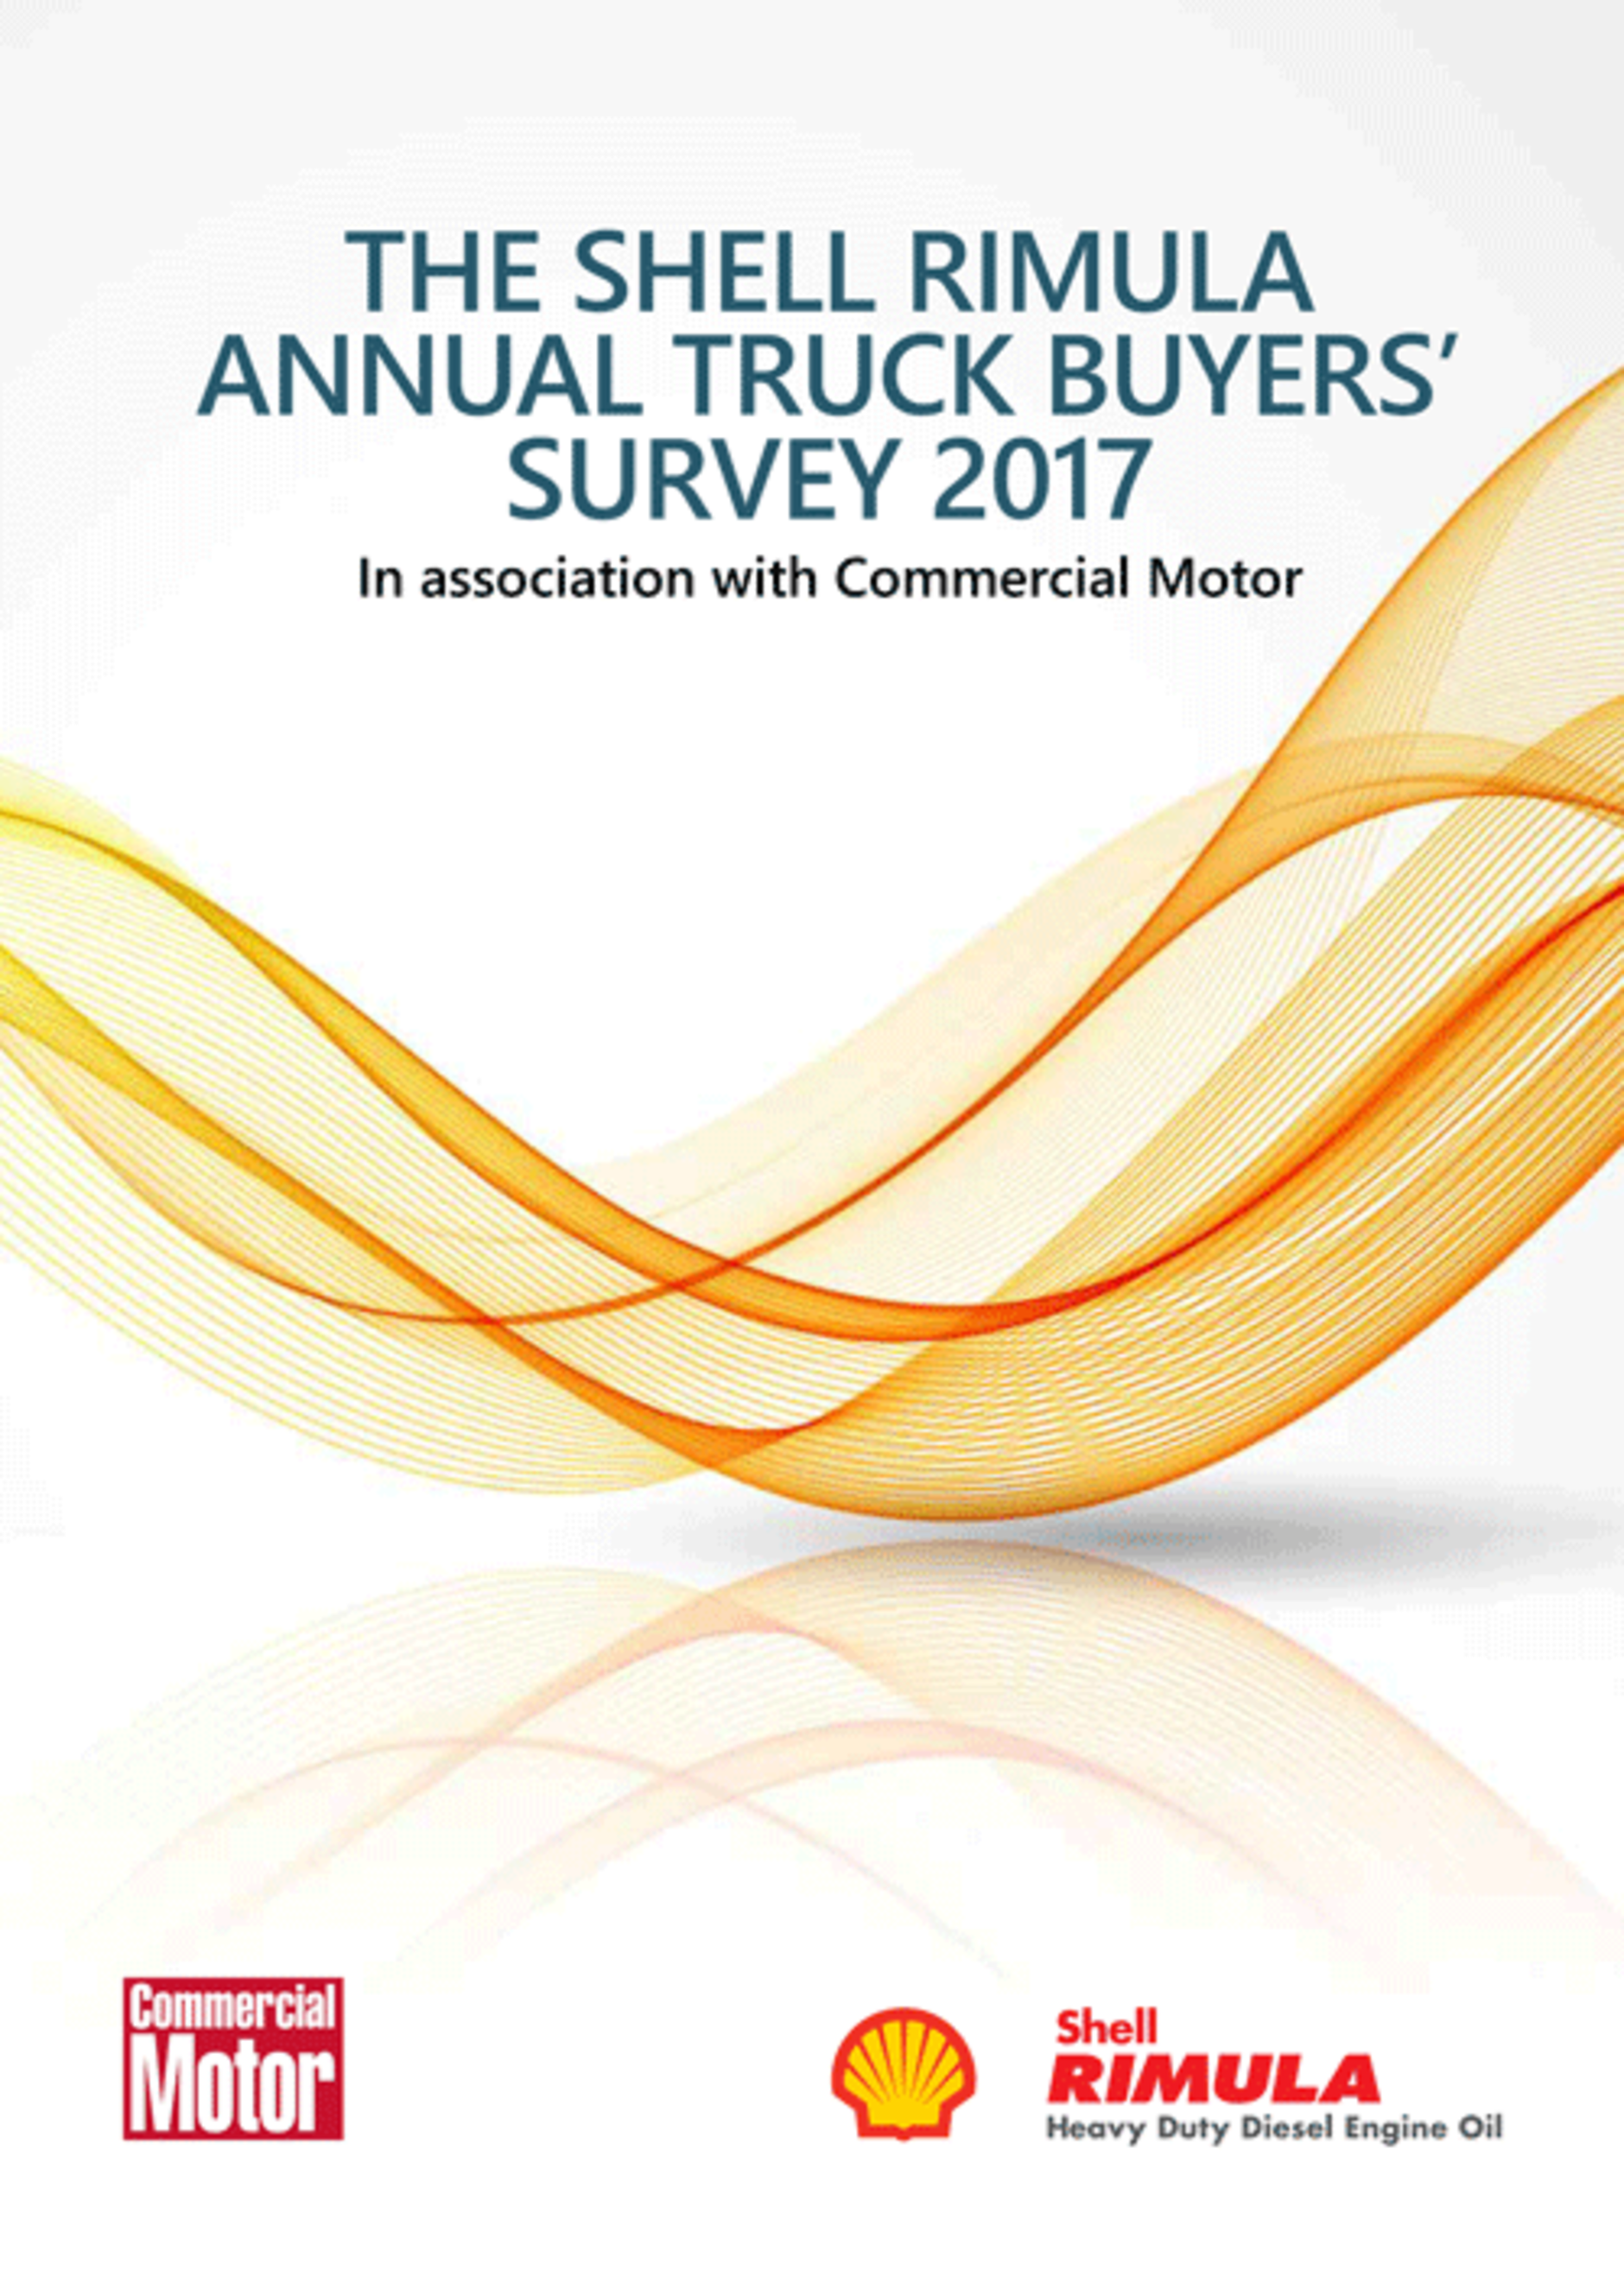 Shell annual truck buyers survey 2017